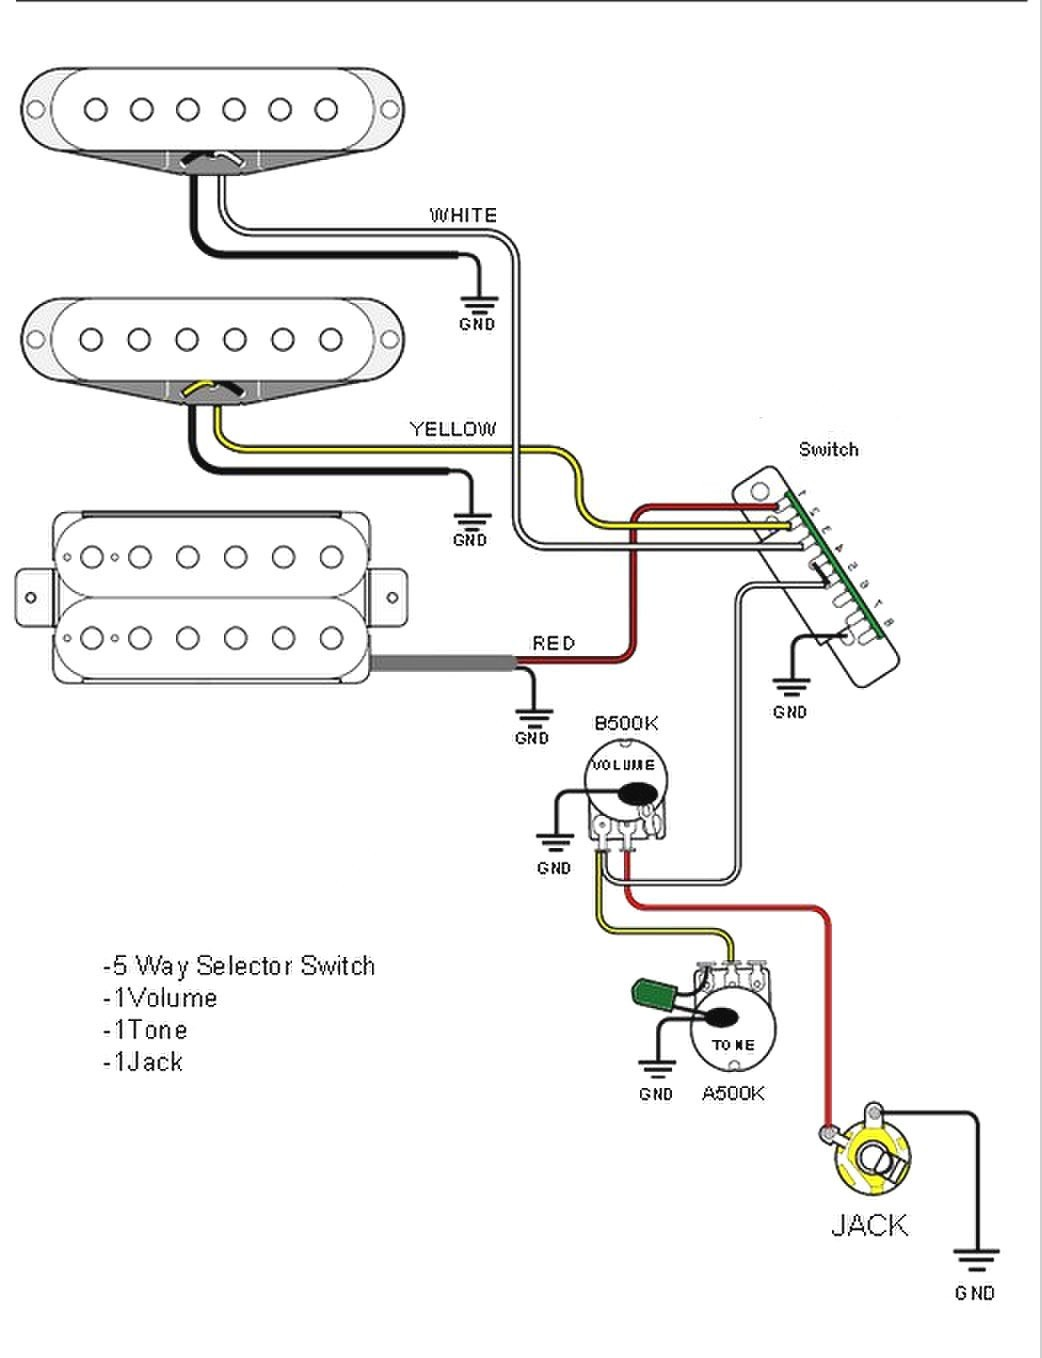 Strat Wiring Diagram New Hsh Wiring Diagram Hermetico Guitar Custom Carvin with Strat Wiring